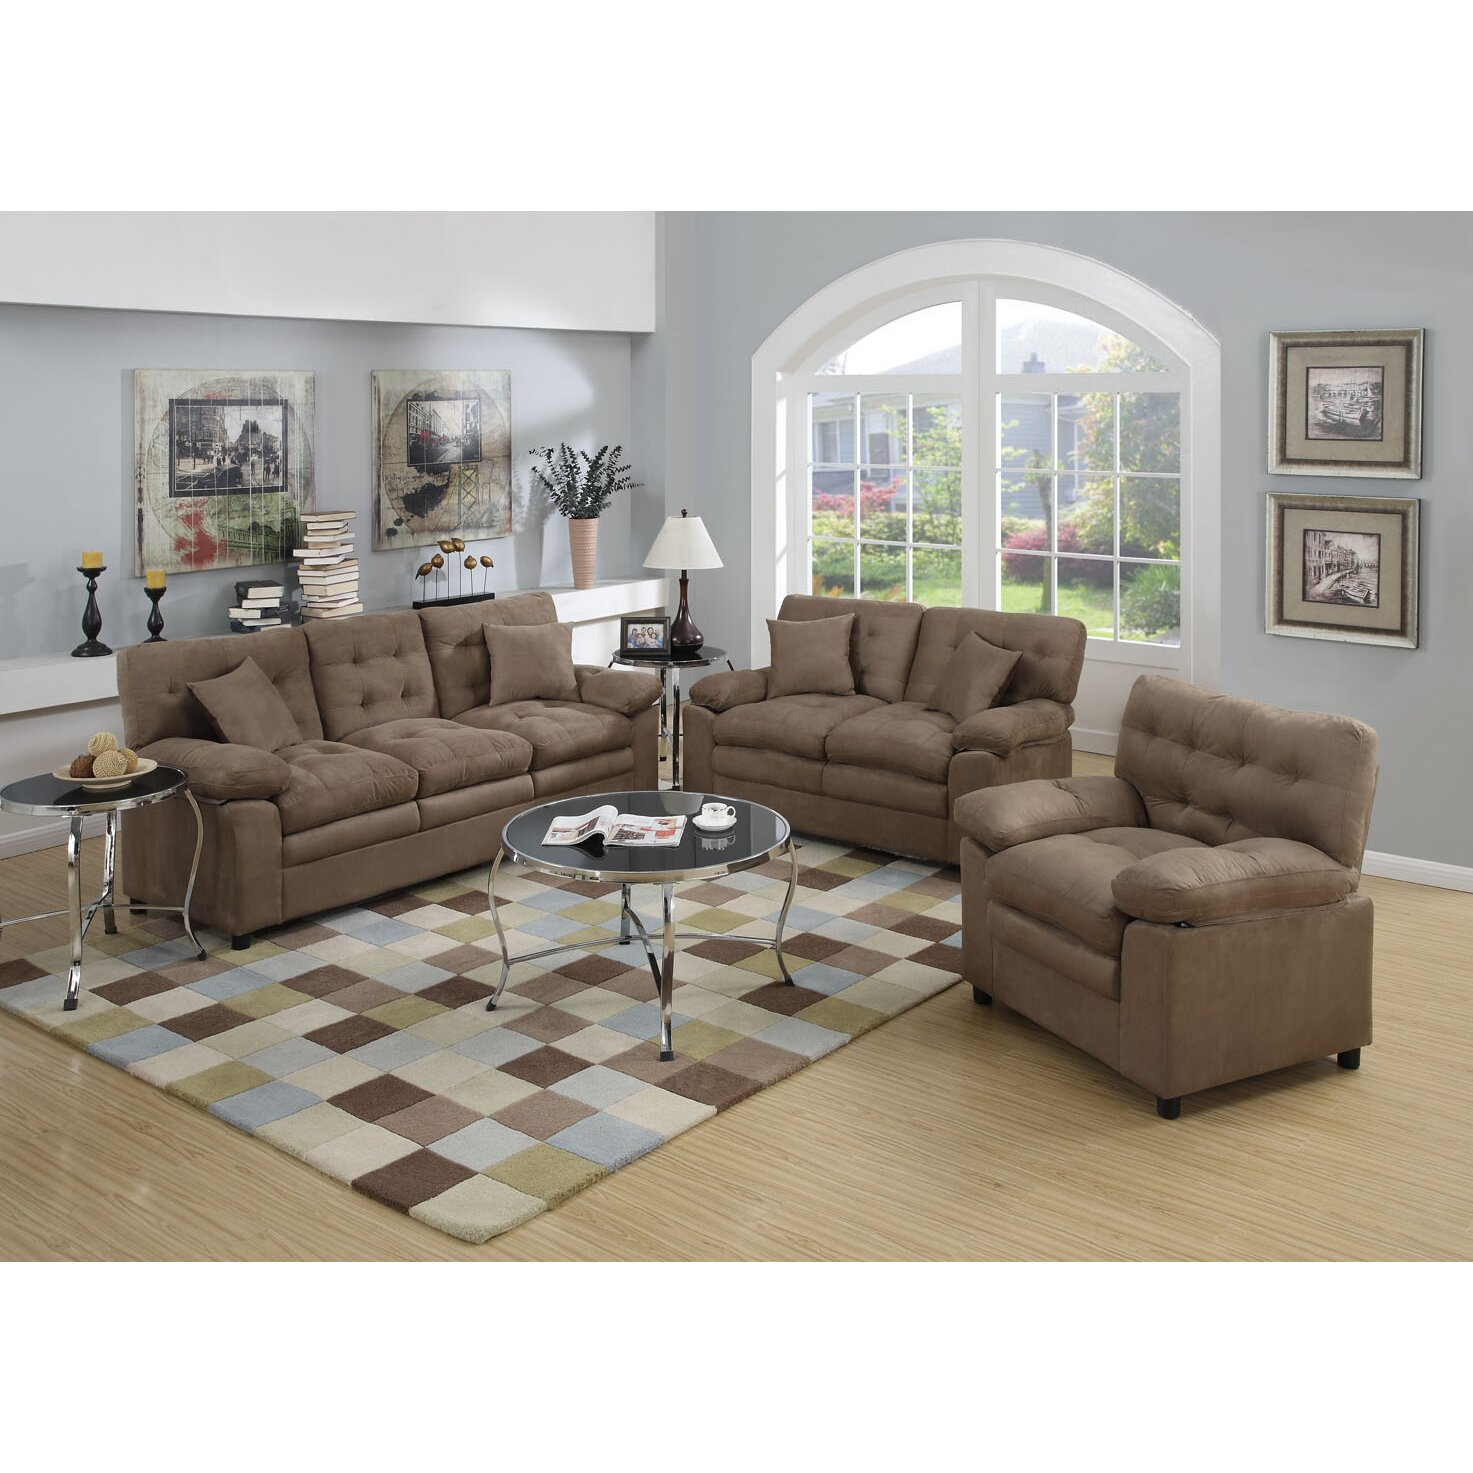 Poundex Bobkona Colona 3 Piece Living Room Set Reviews Wayfair